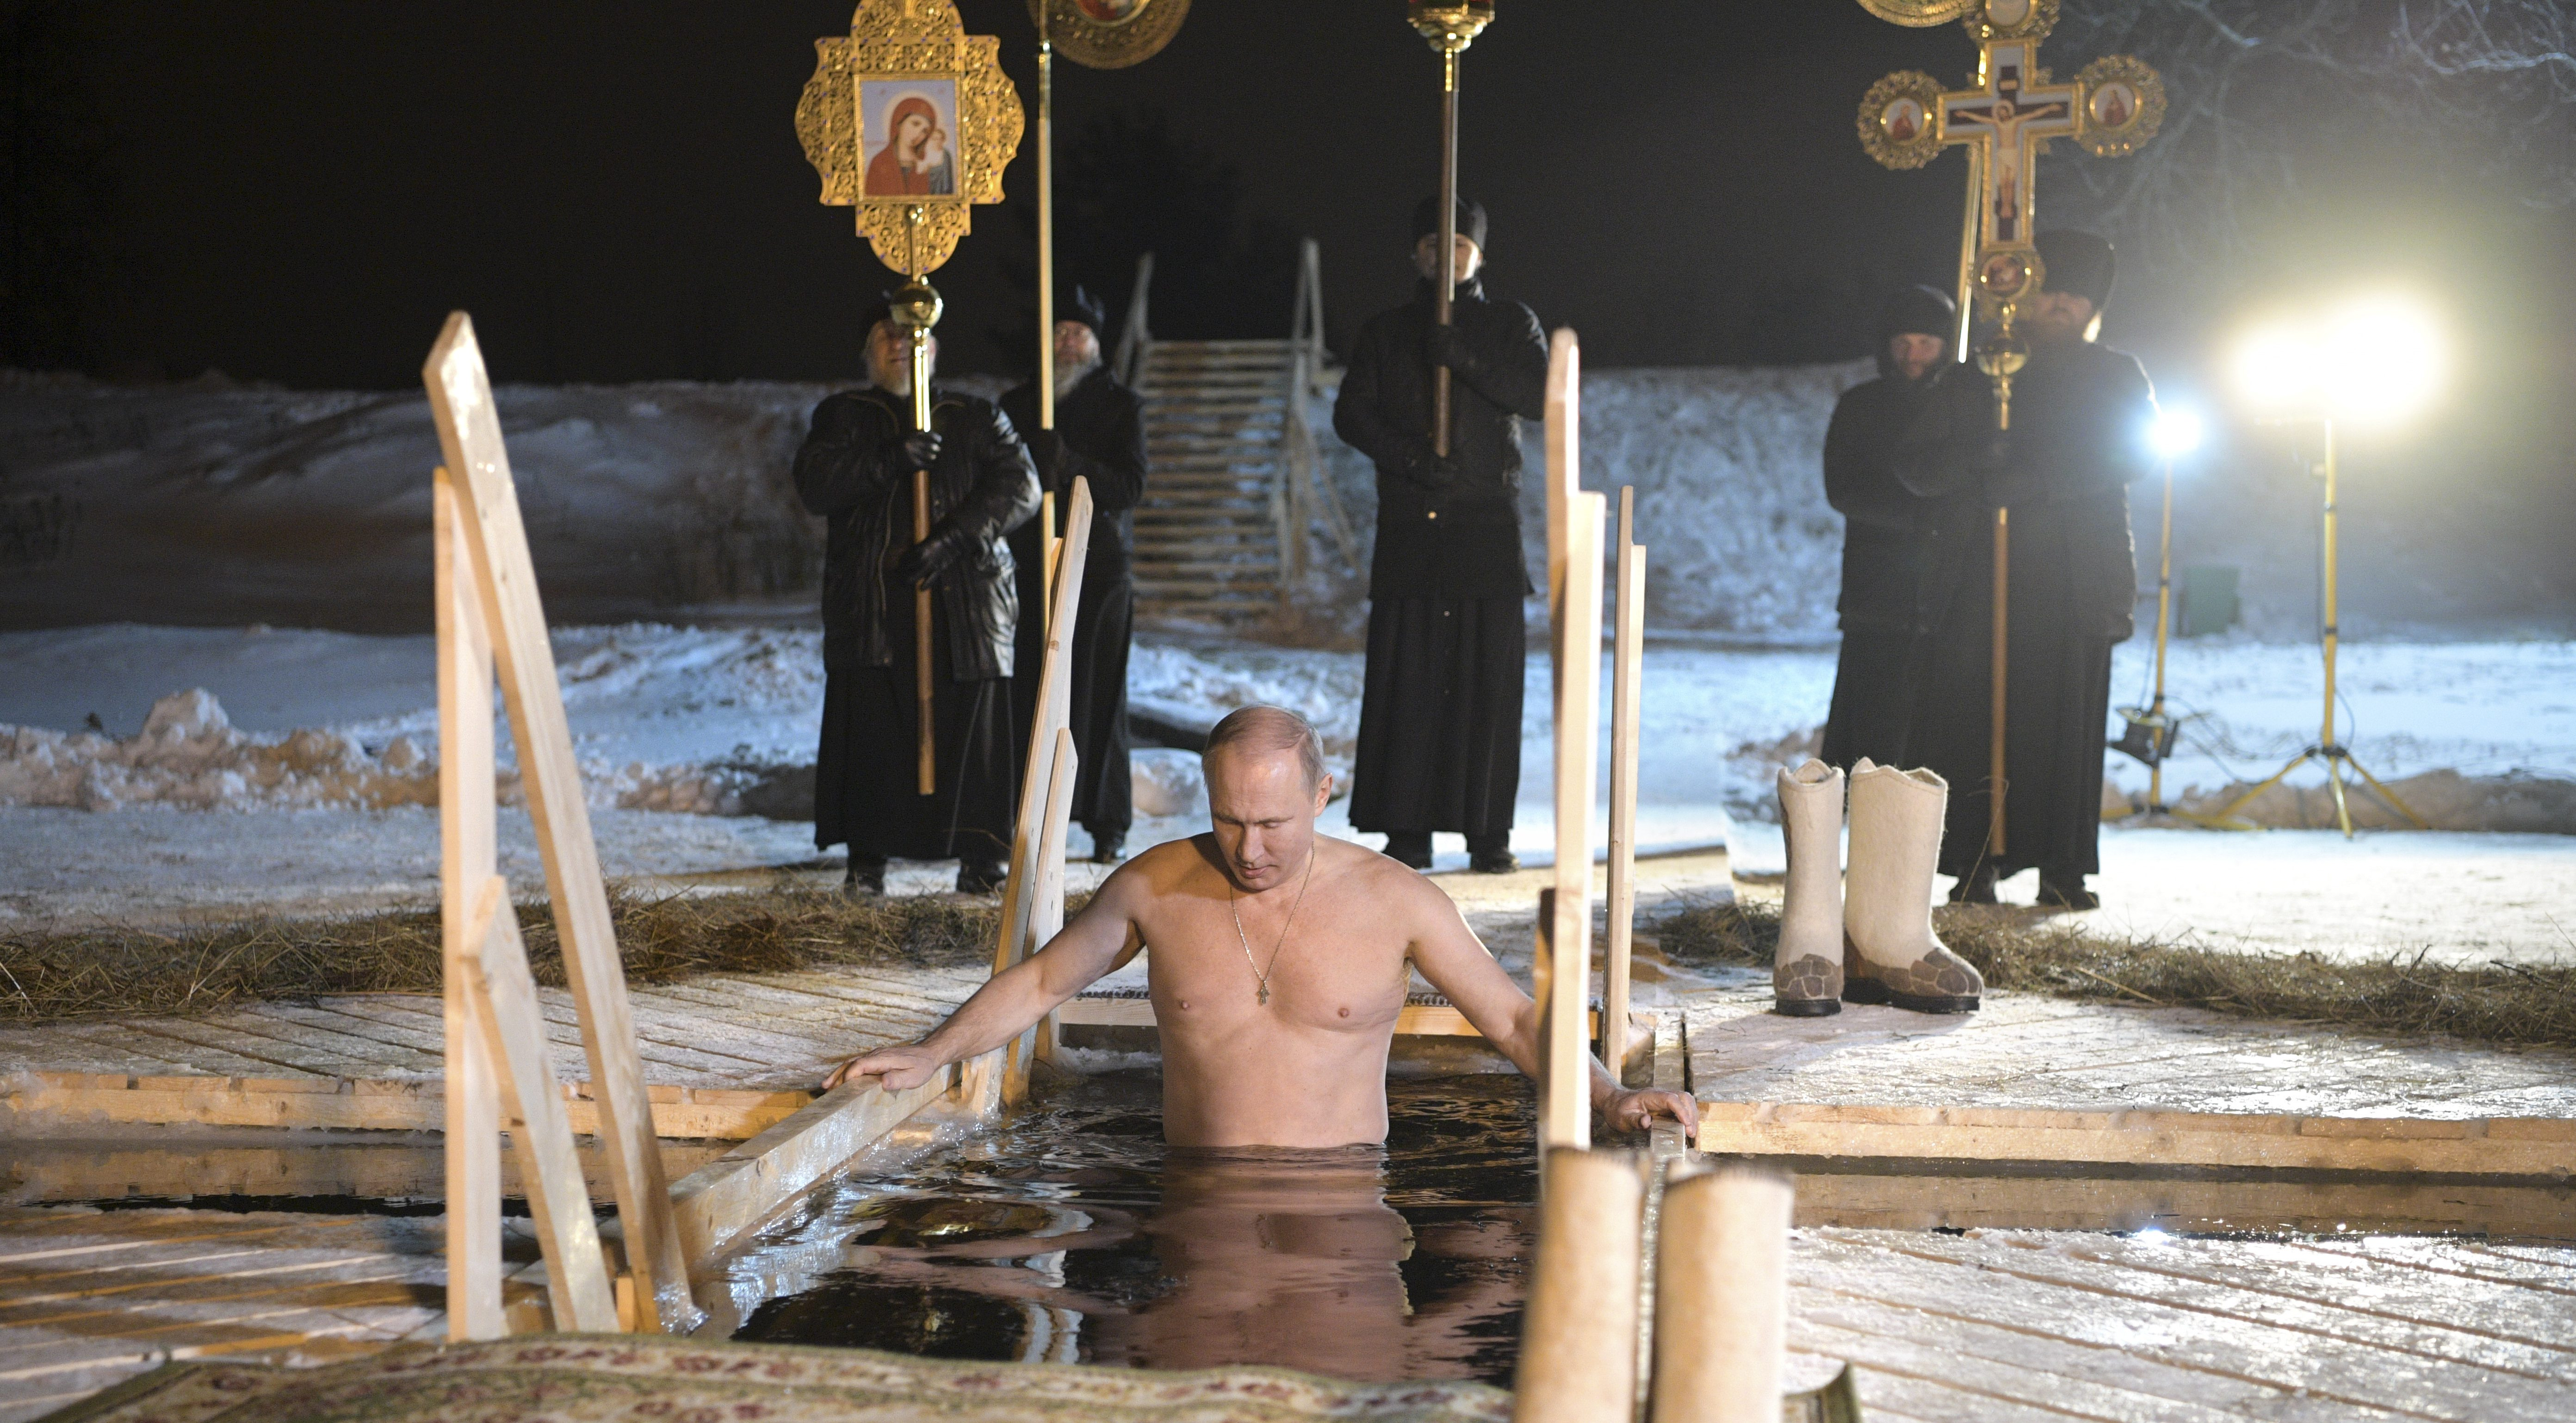 Russian President Putin takes a dip in the freezing waters of Lake Seliger during Orthodox Epiphany celebrations in Tver region